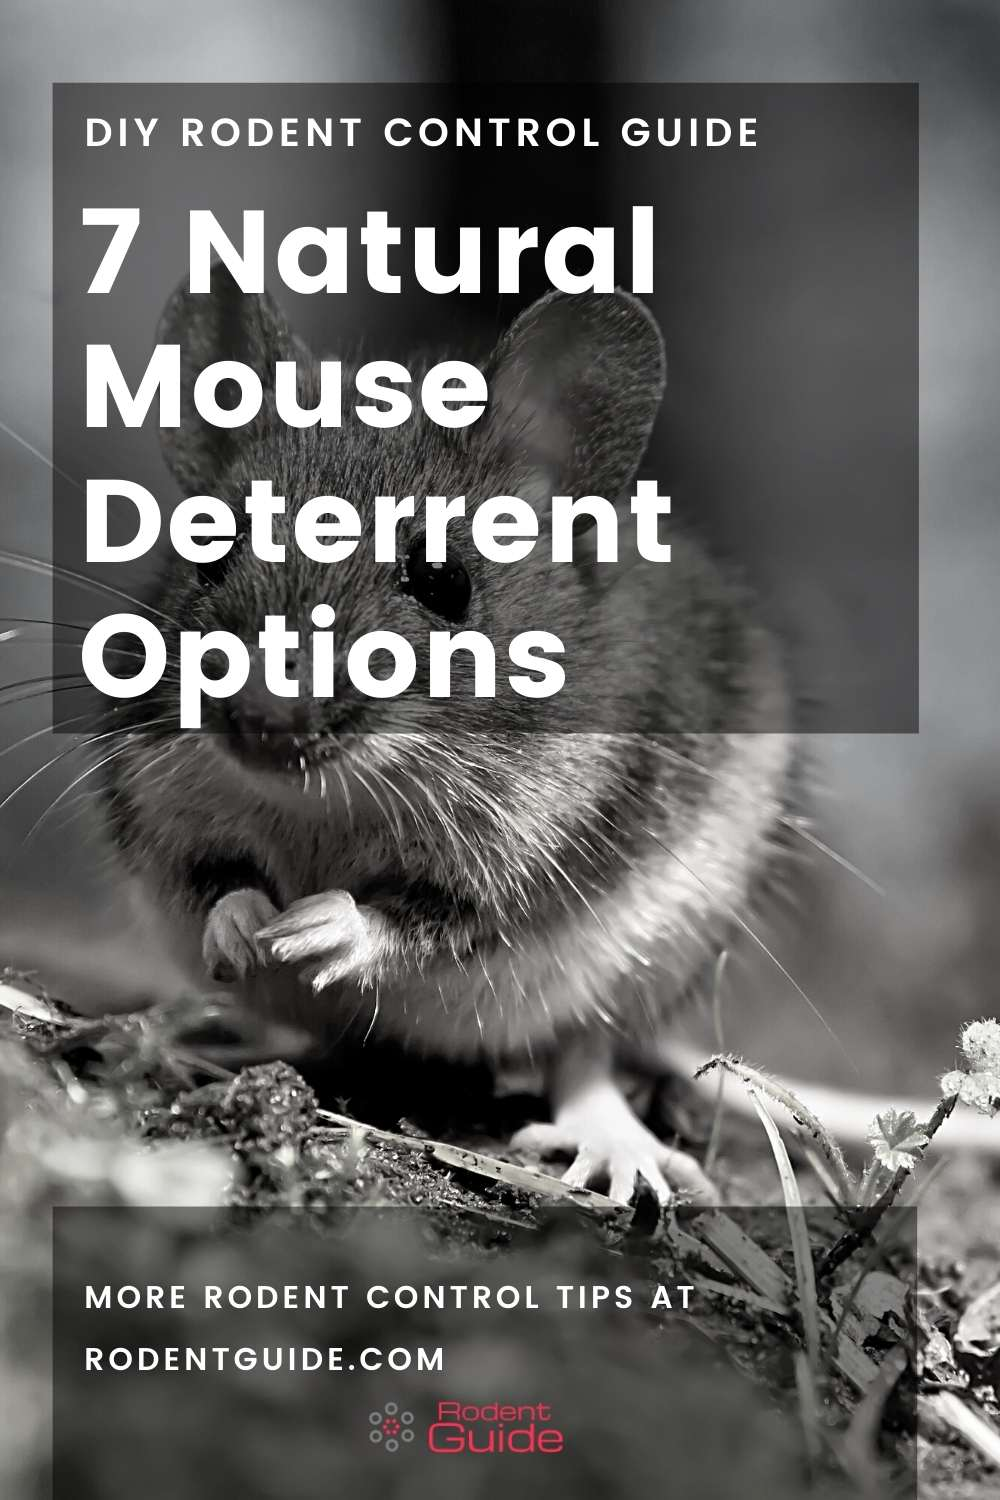 7 Natural Mouse Deterrent Options